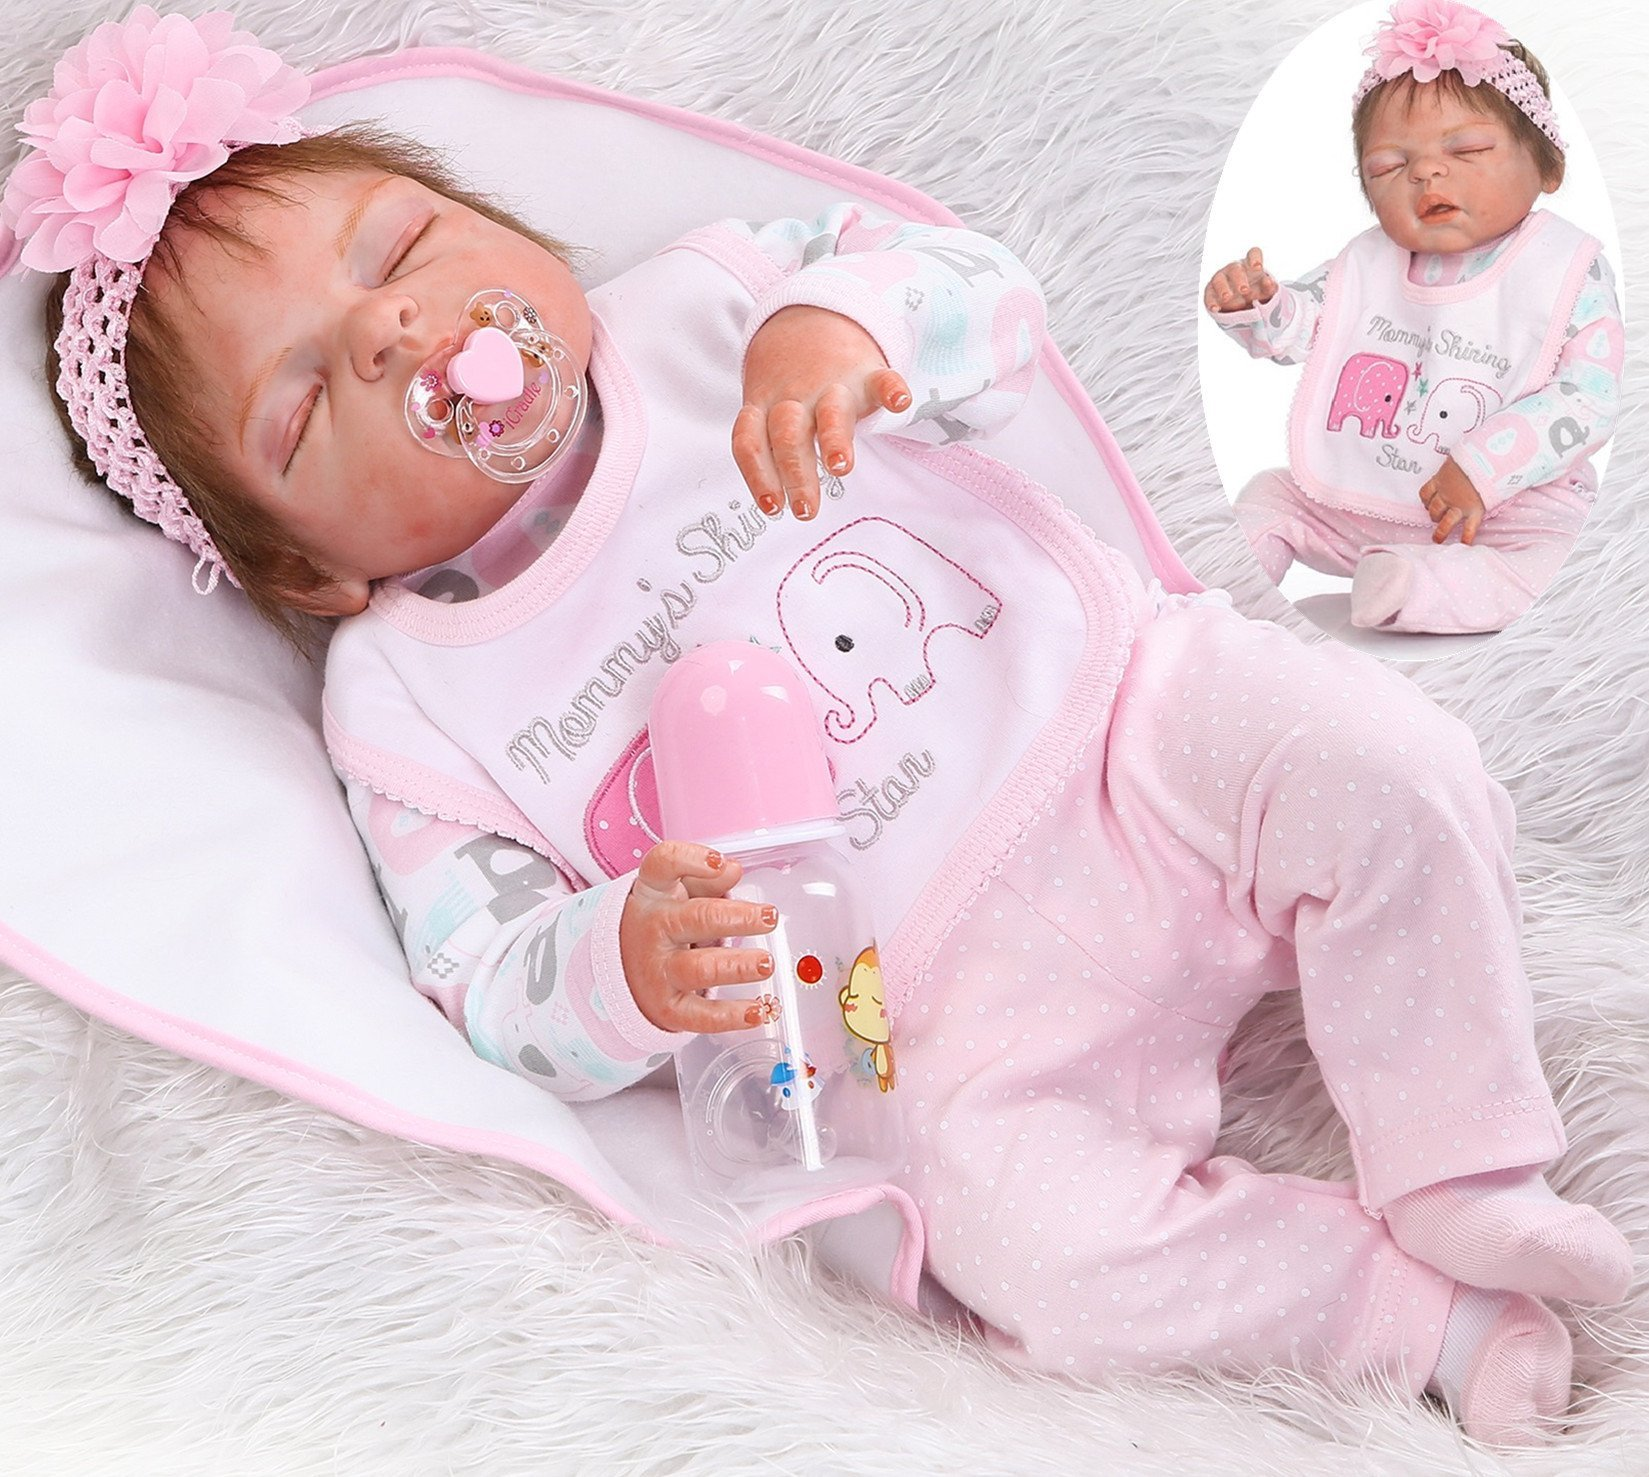 Sleeping Reborn Baby Dolls Girl Silicone Vinyl Full Body 22 inchs 55 cm Realistic Washable Handmade Anatomically Correct Pink Outfit Gift Set for Ages 3+